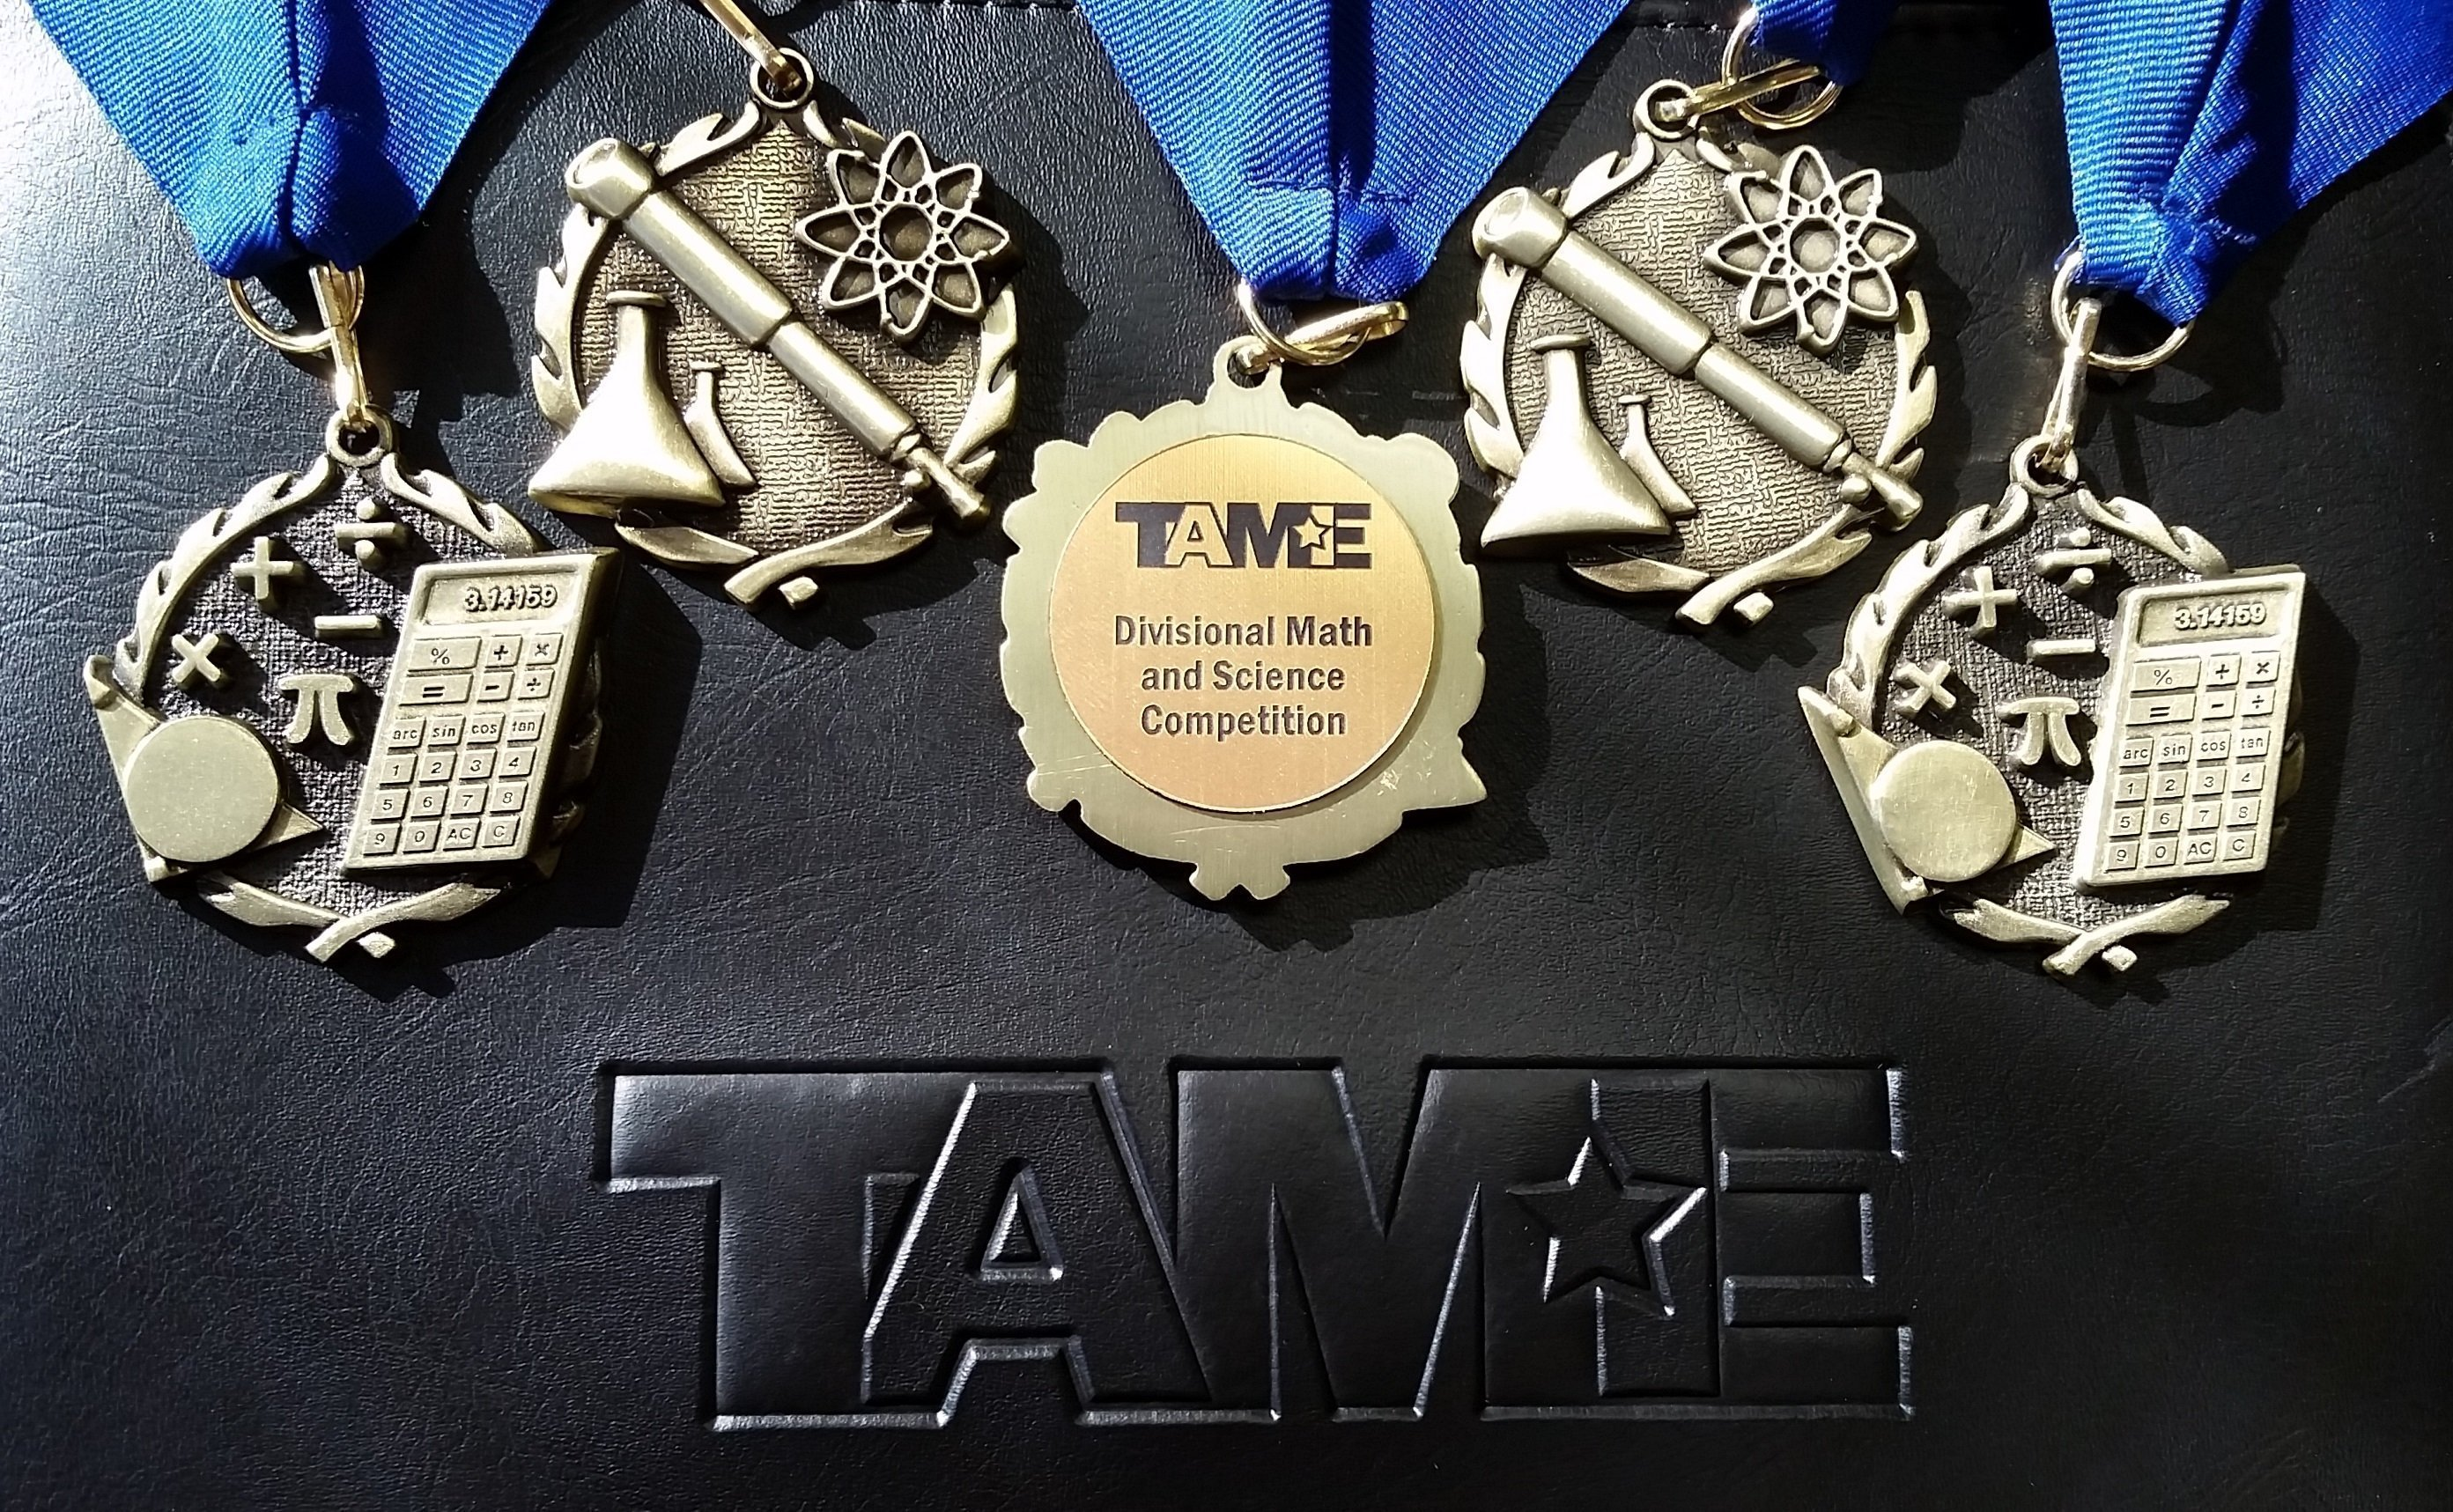 The 2016 TAME Lubbock STEM Competition was hosted by the Division of Institutional Diversity, Equity, and Community Engagement at Texas Tech University on Saturday January 23, 2016. The event, held free of cost to participants, brought together 100 student competitors (grades 6-12) from across the region.